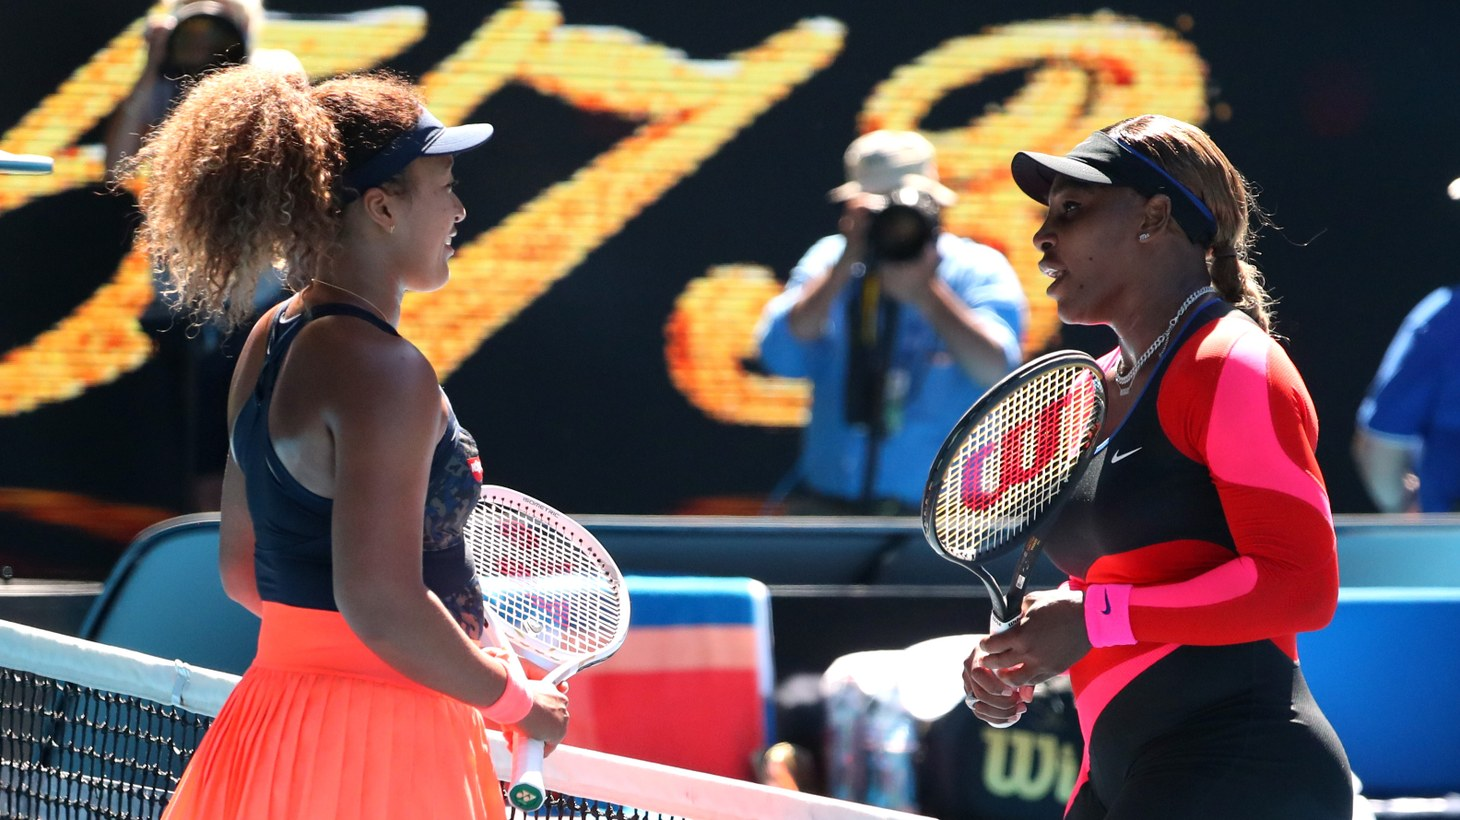 Japan's Naomi Osaka with Serena Williams of the U.S. after winning their semi final match at the Australian Open in Melbourne, Australia, February 18, 2021.